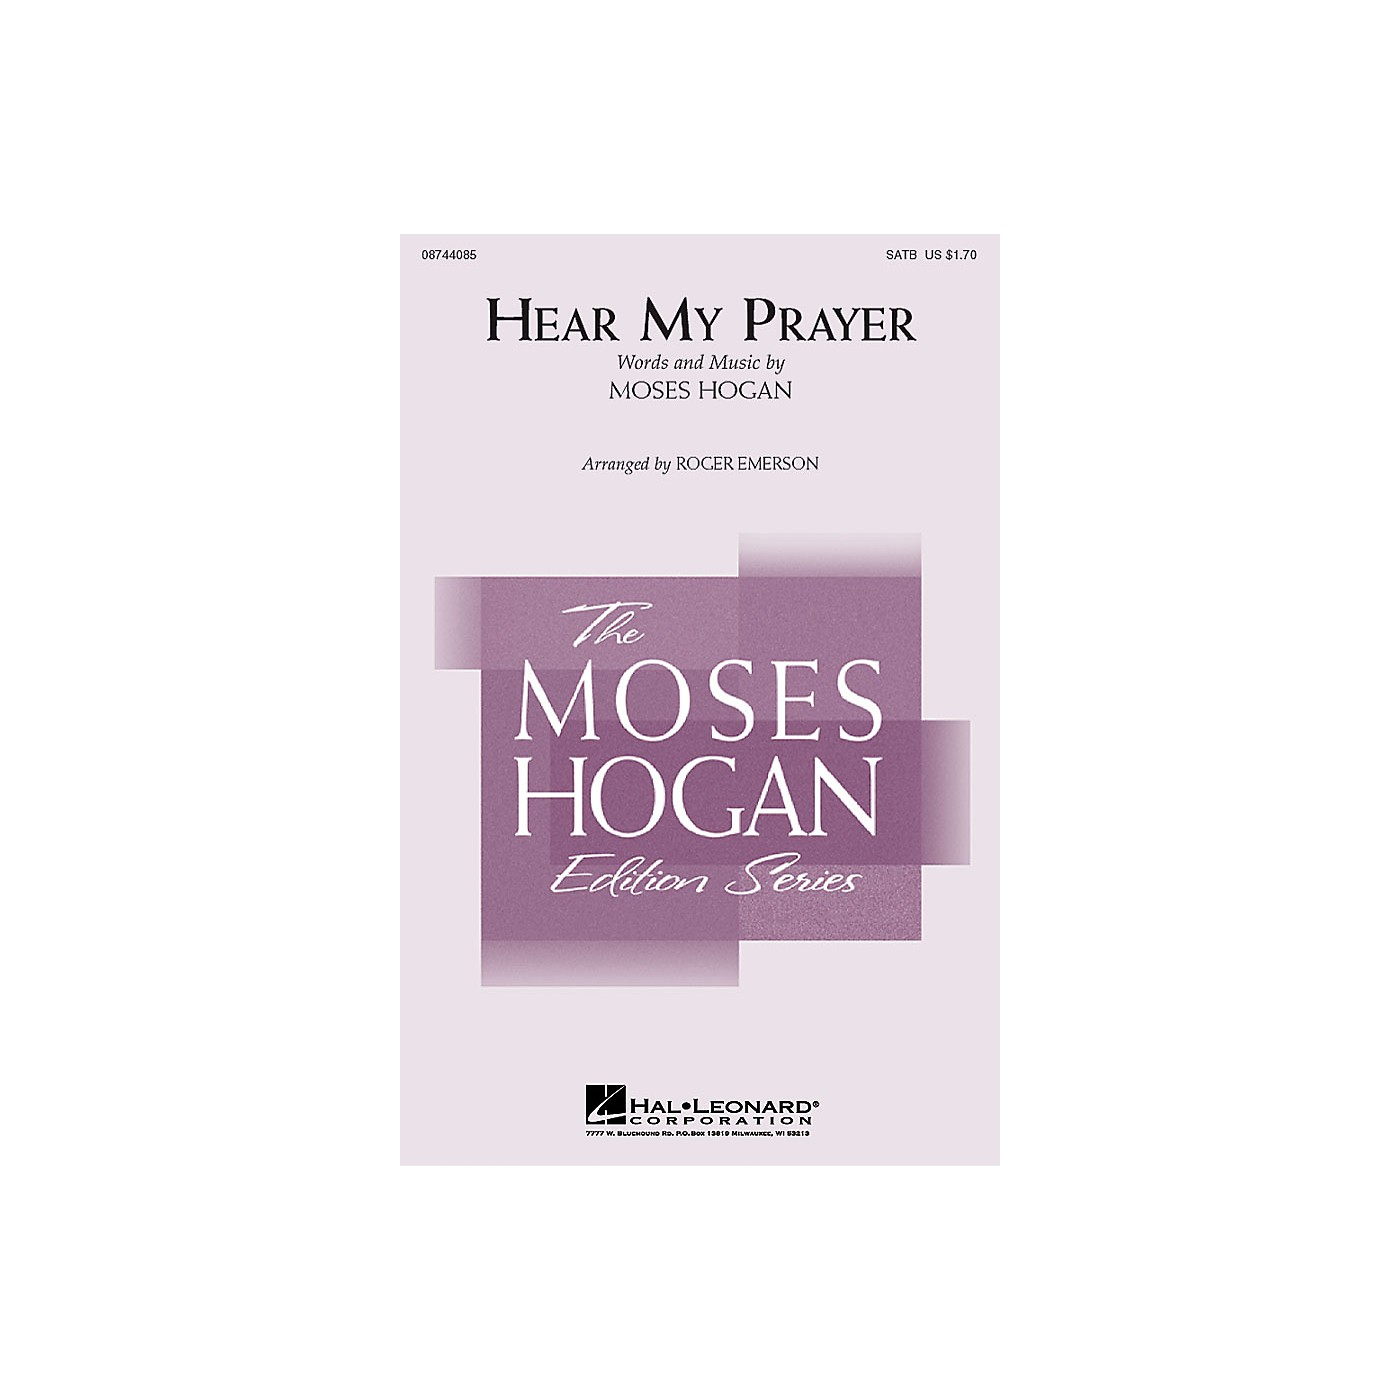 Hal Leonard Hear My Prayer SATB arranged by Roger Emerson thumbnail